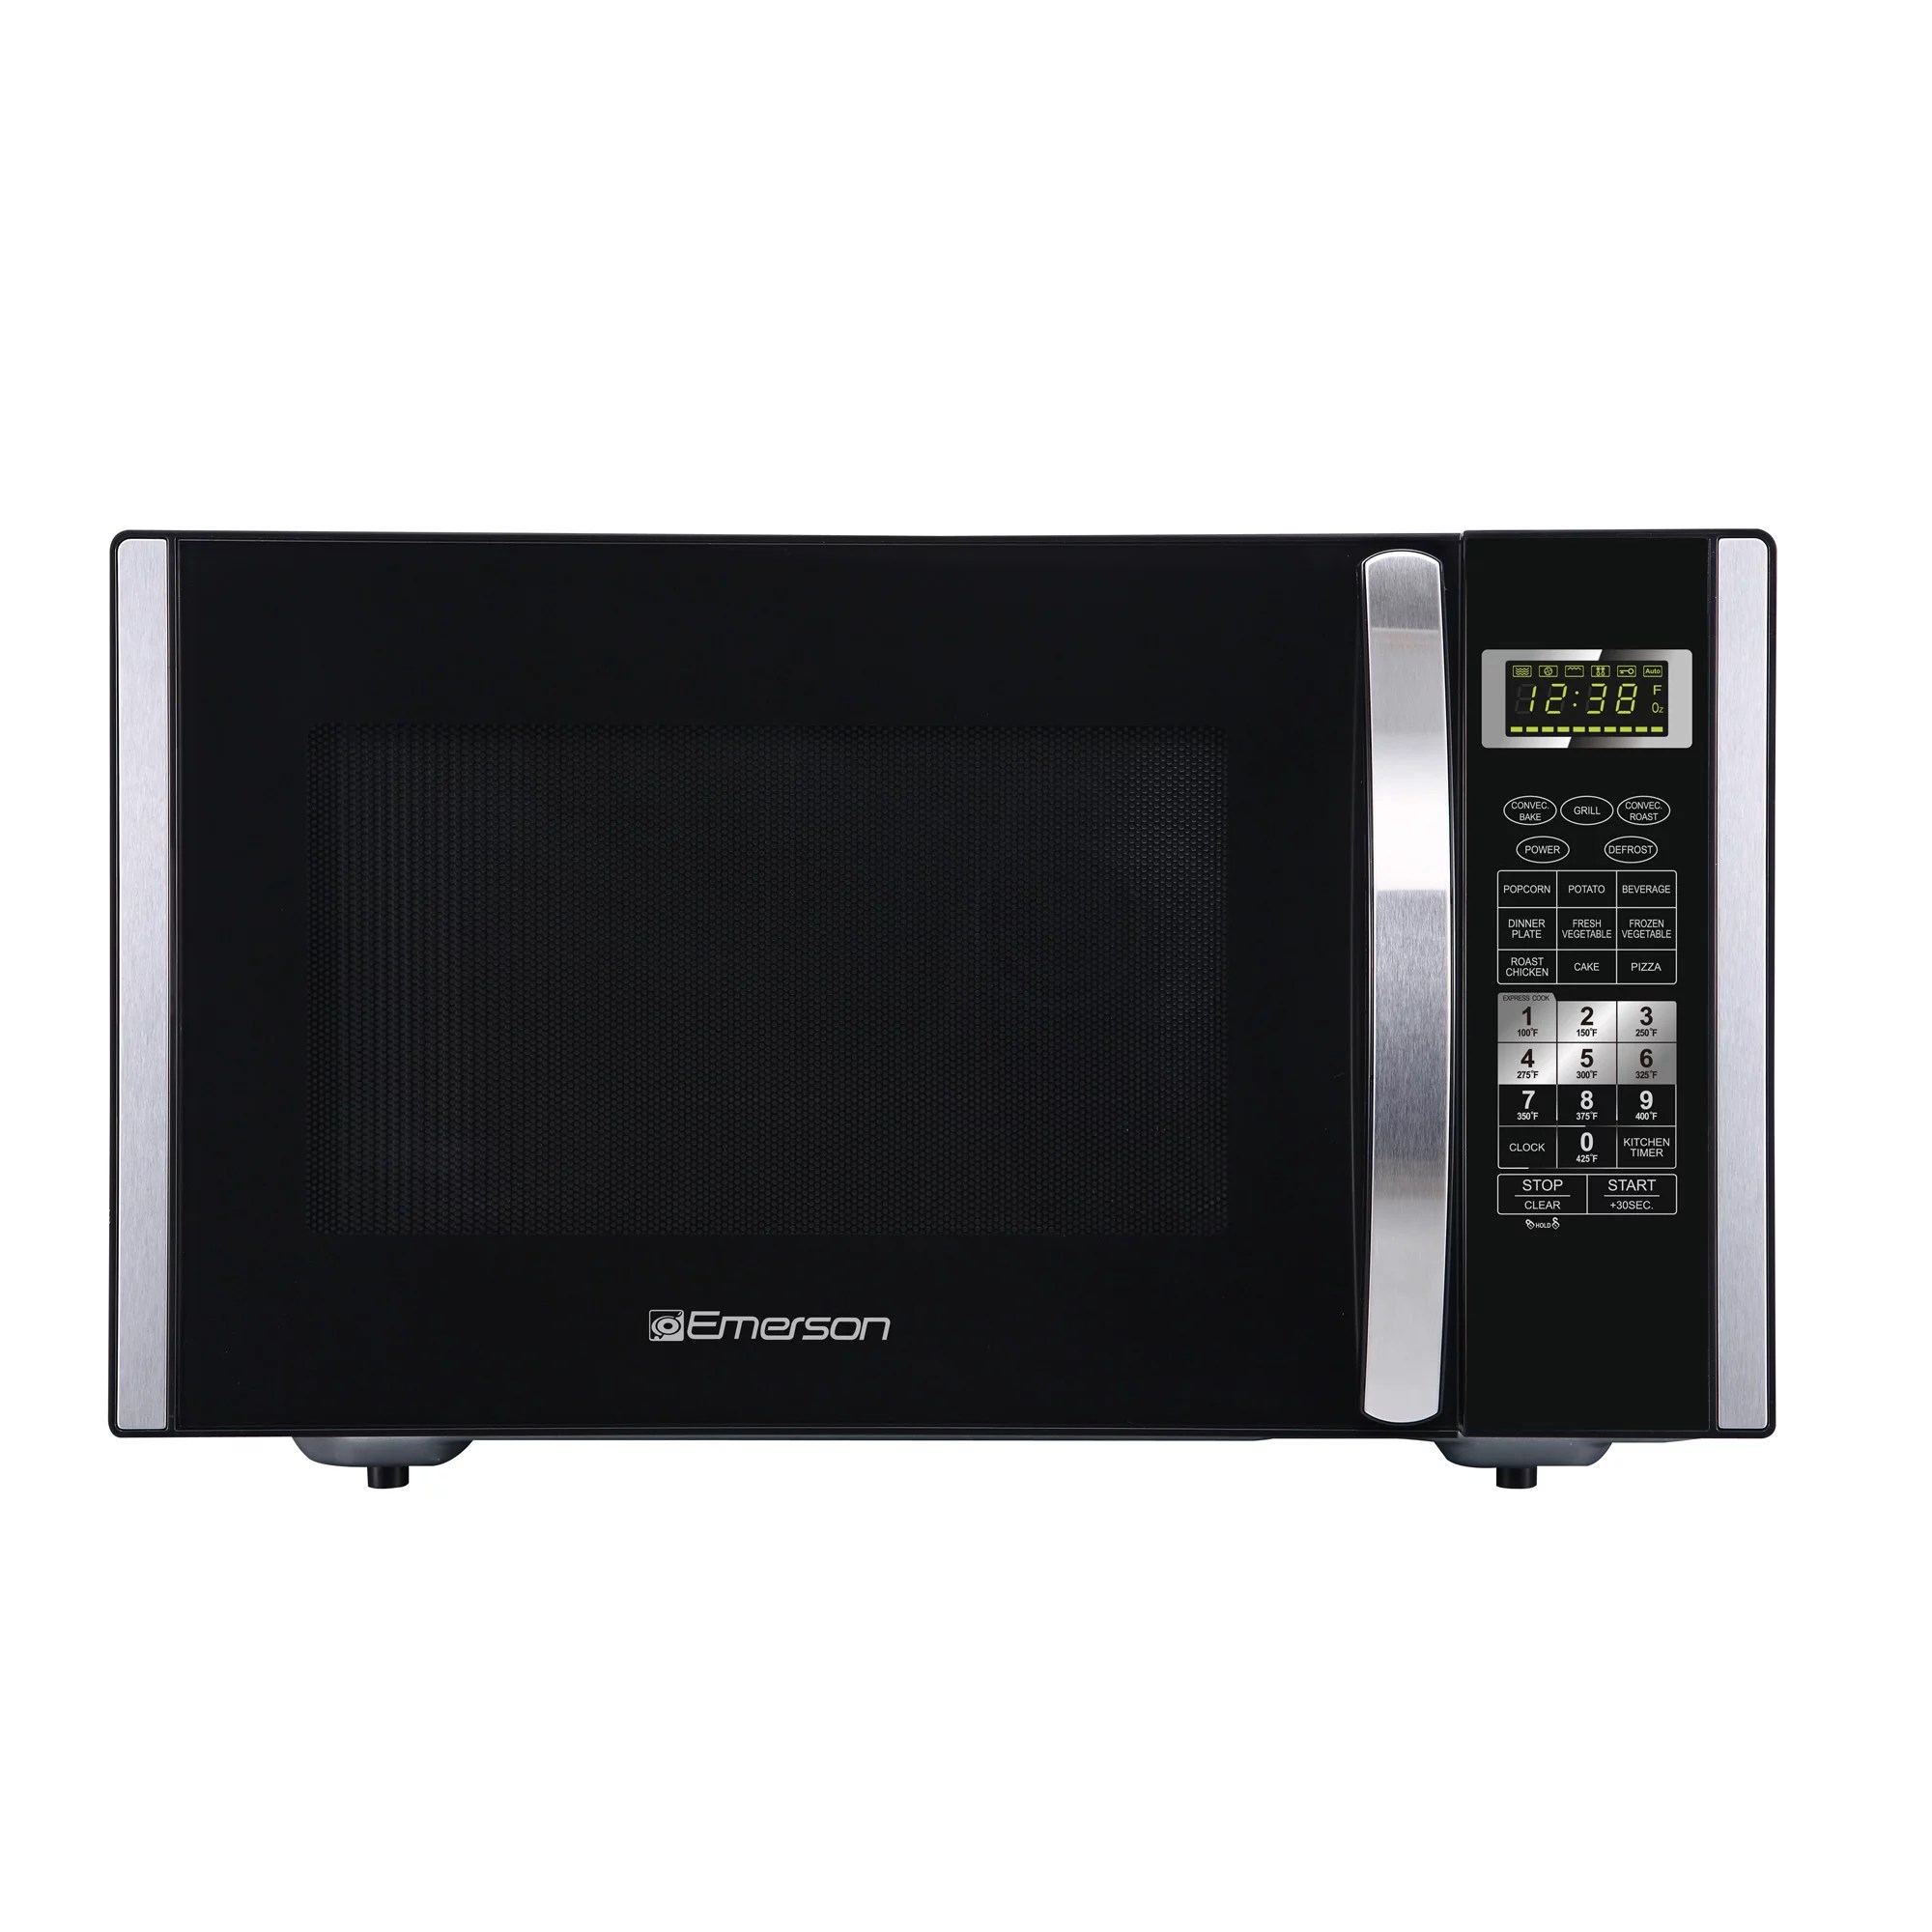 emerson 1 5 cu ft 1000w convection microwave oven with grill touch sharp carousel wiring diagram emerson microwave fan wiring diagram [ 2000 x 2000 Pixel ]